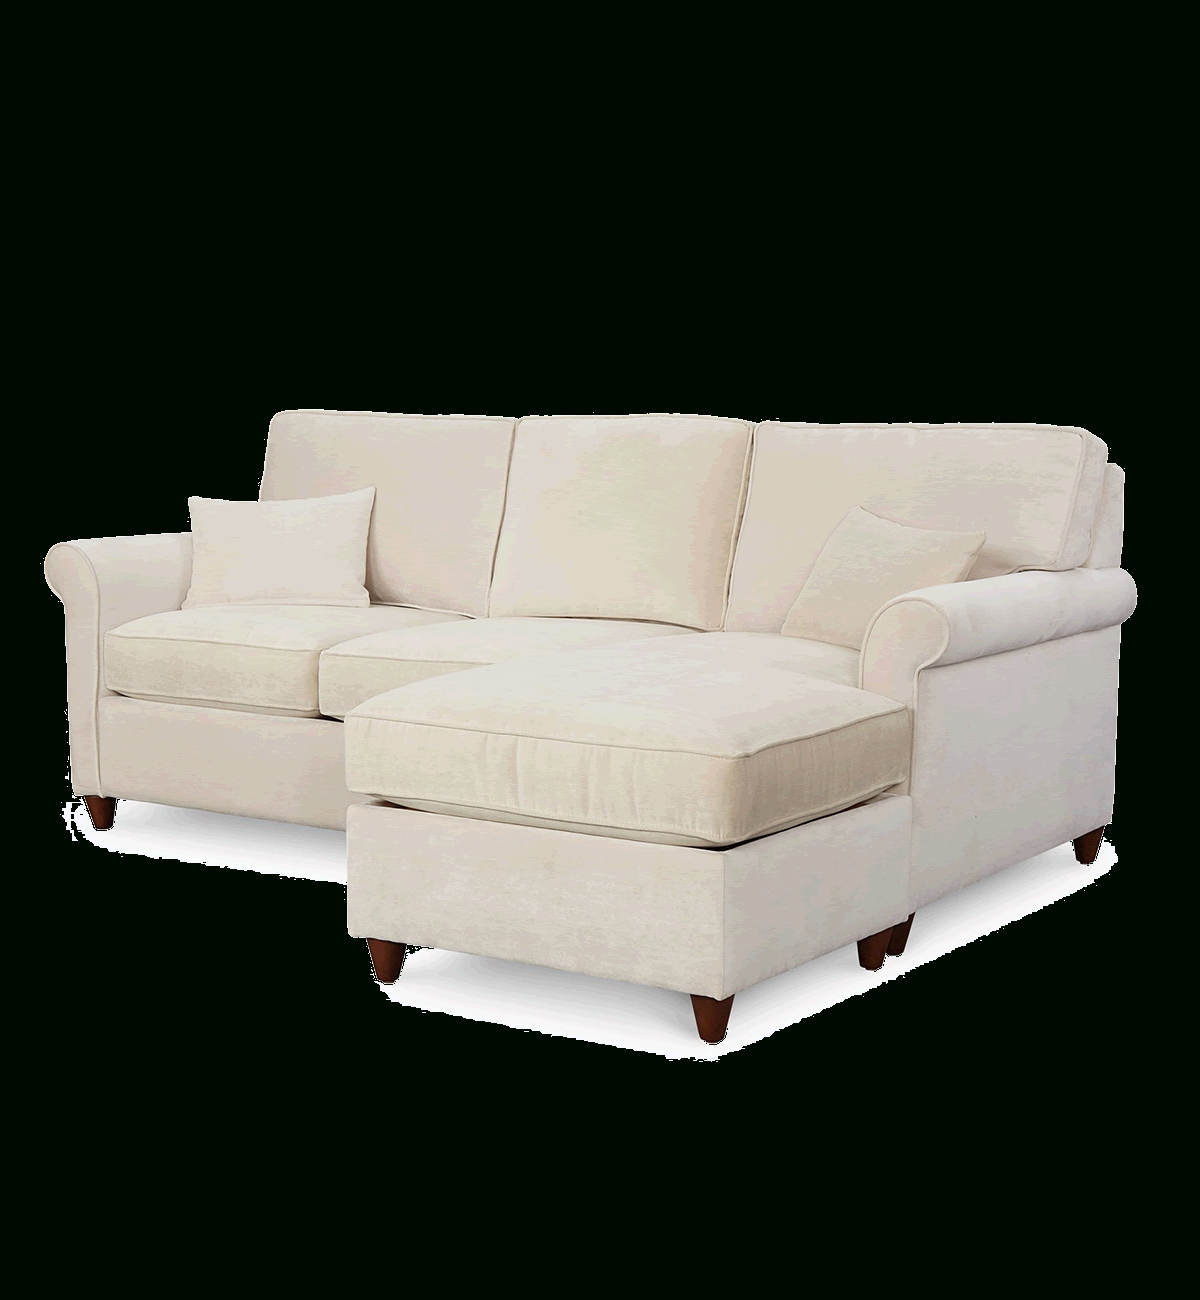 Best And Newest Macys Sectional Sofas Regarding Sectional Sofas Couches And Sofas – Macy's (Gallery 12 of 20)